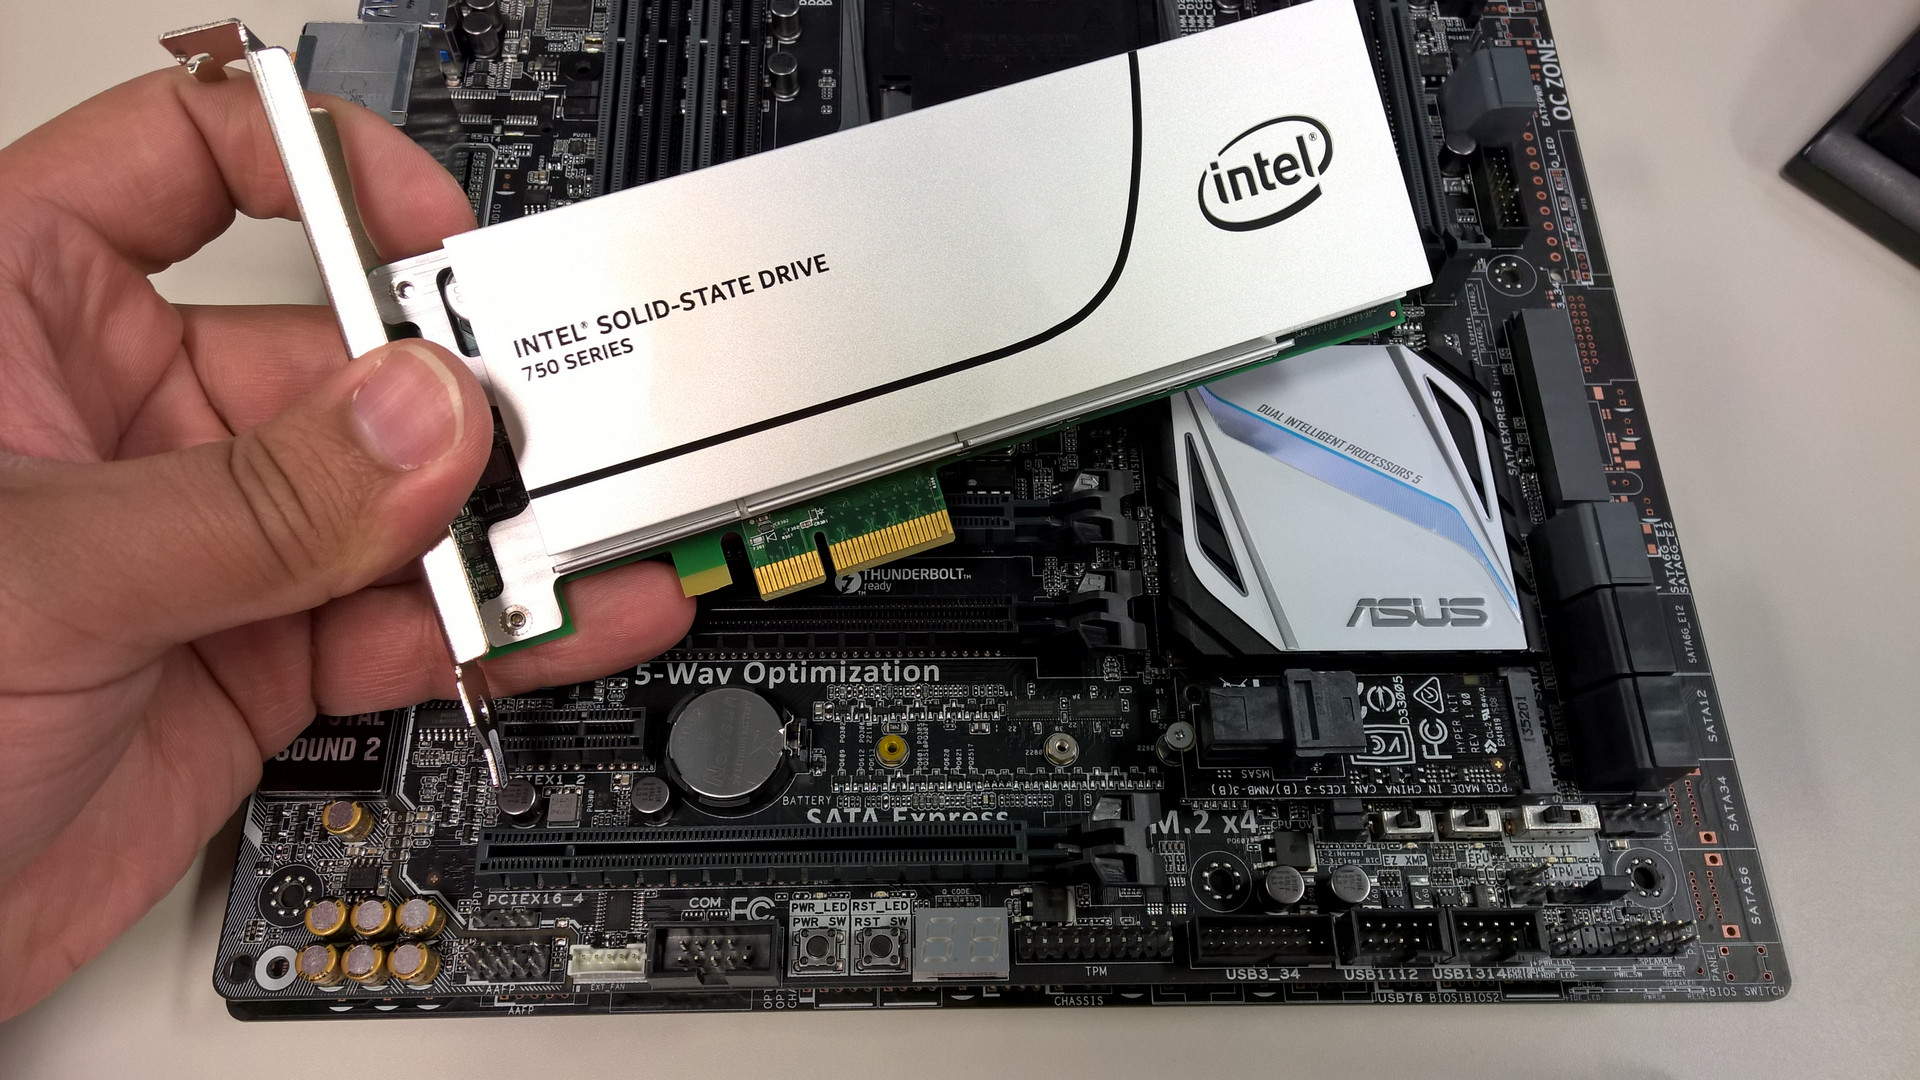 ASUS Z97 & X99 Motherboards & Intel 750 series NVMe SSDs – All You